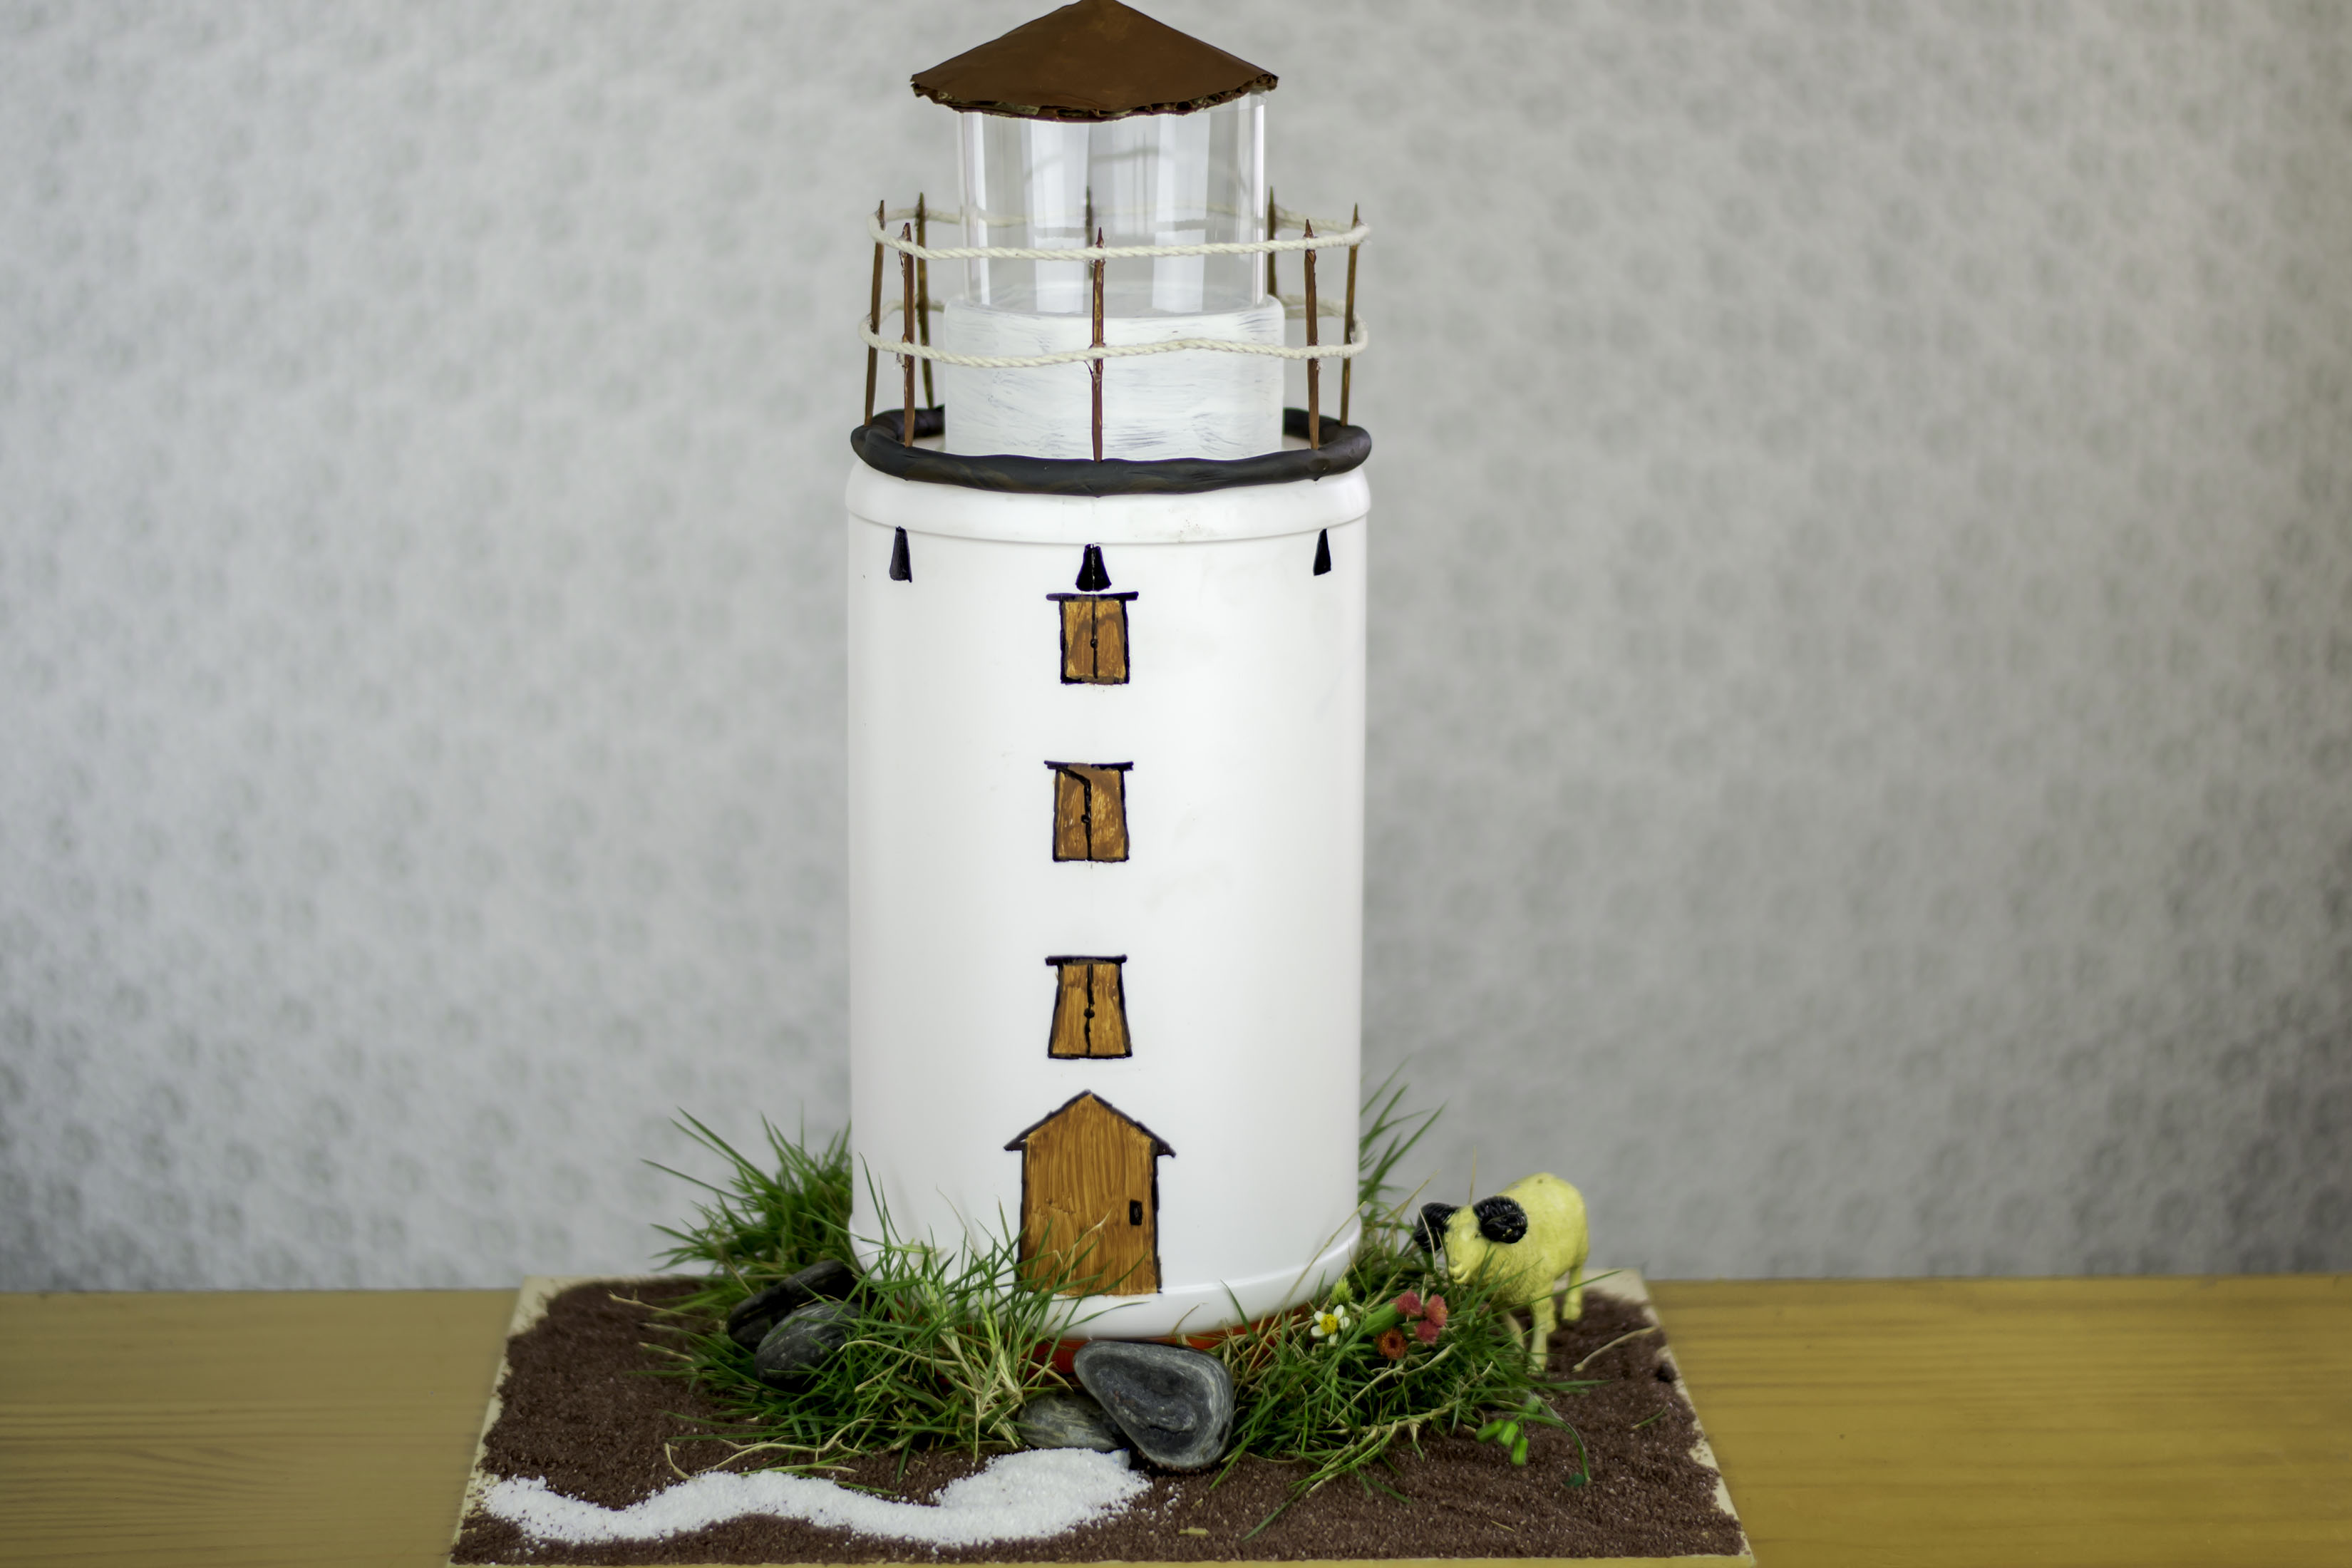 How To Build A Model Lighthouse For School Project Synonym Make Electric Circuit